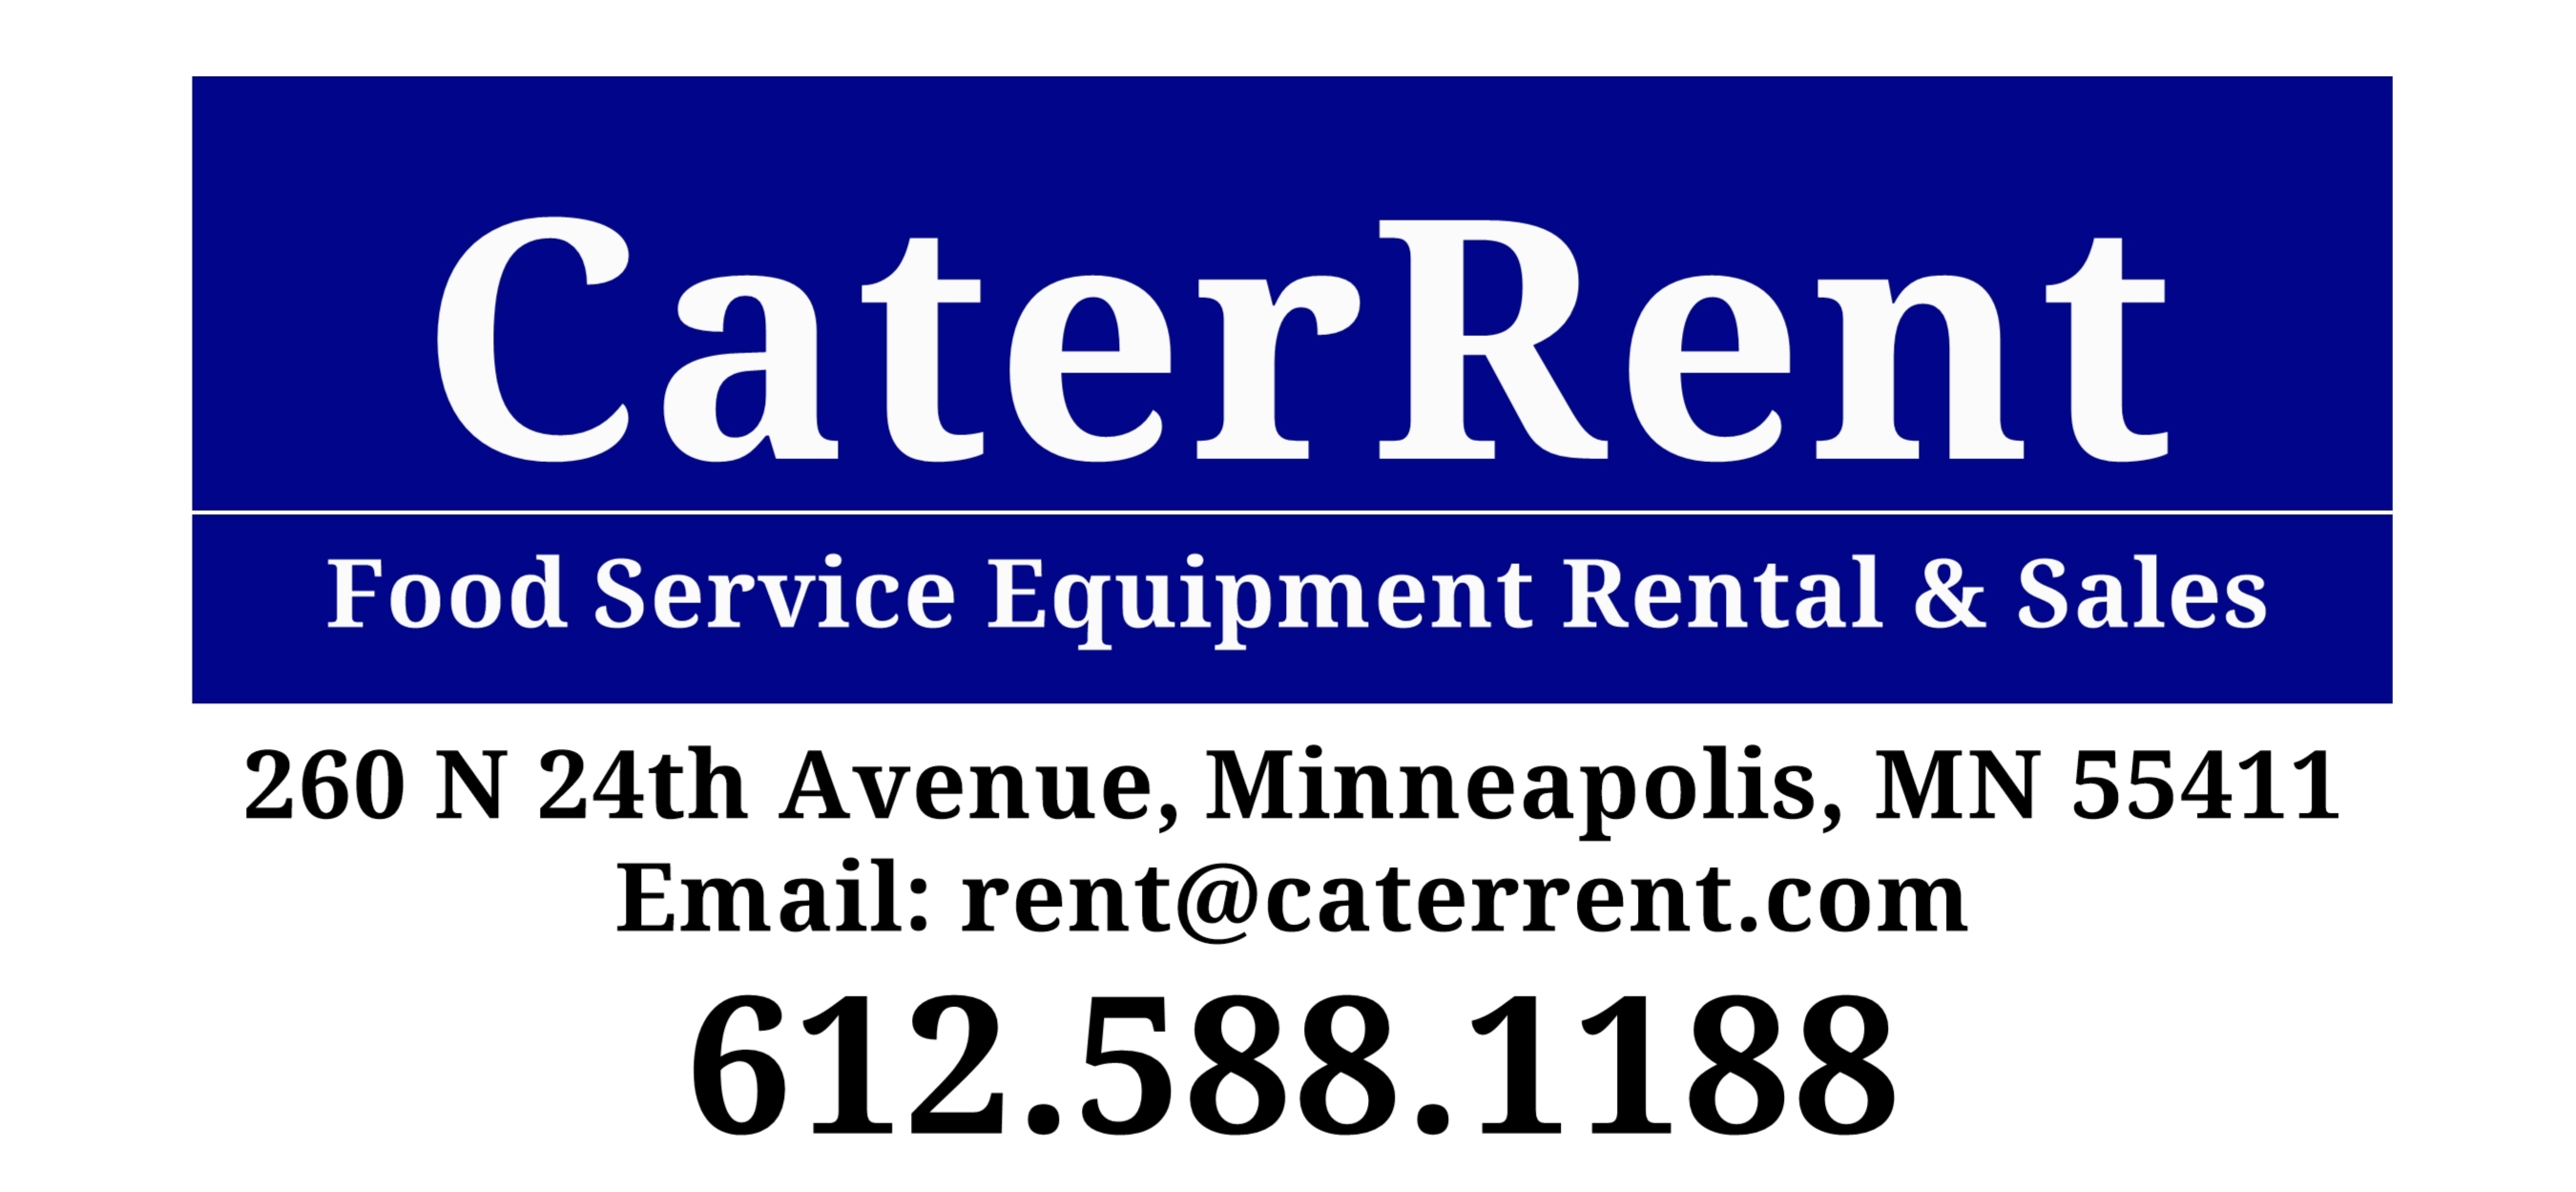 Cater Rent